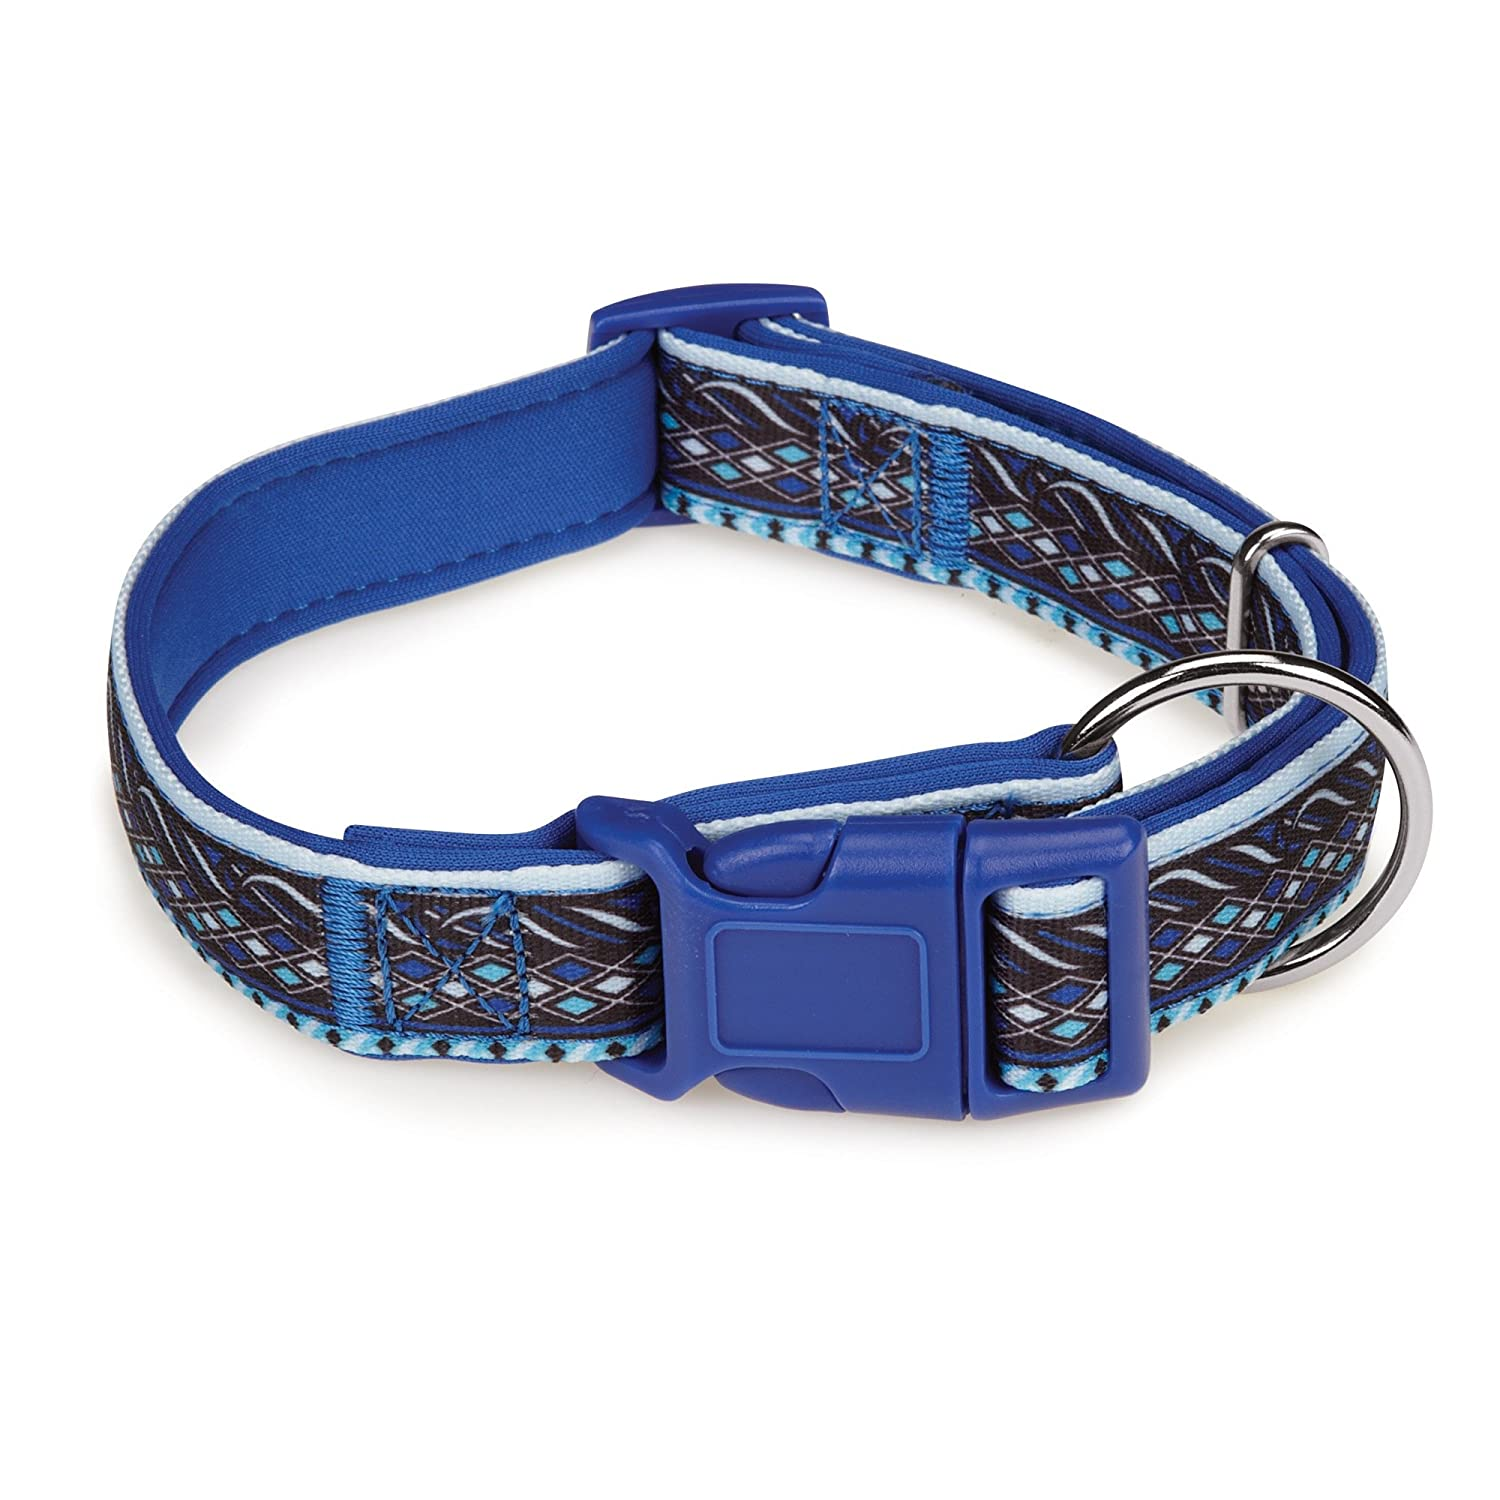 bluee Aztec 6 to 10-Inch bluee Aztec 6 to 10-Inch Casual Canine ZW5012 06 19 Neoprene Collar, 6 to 10-Inch, bluee Aztec